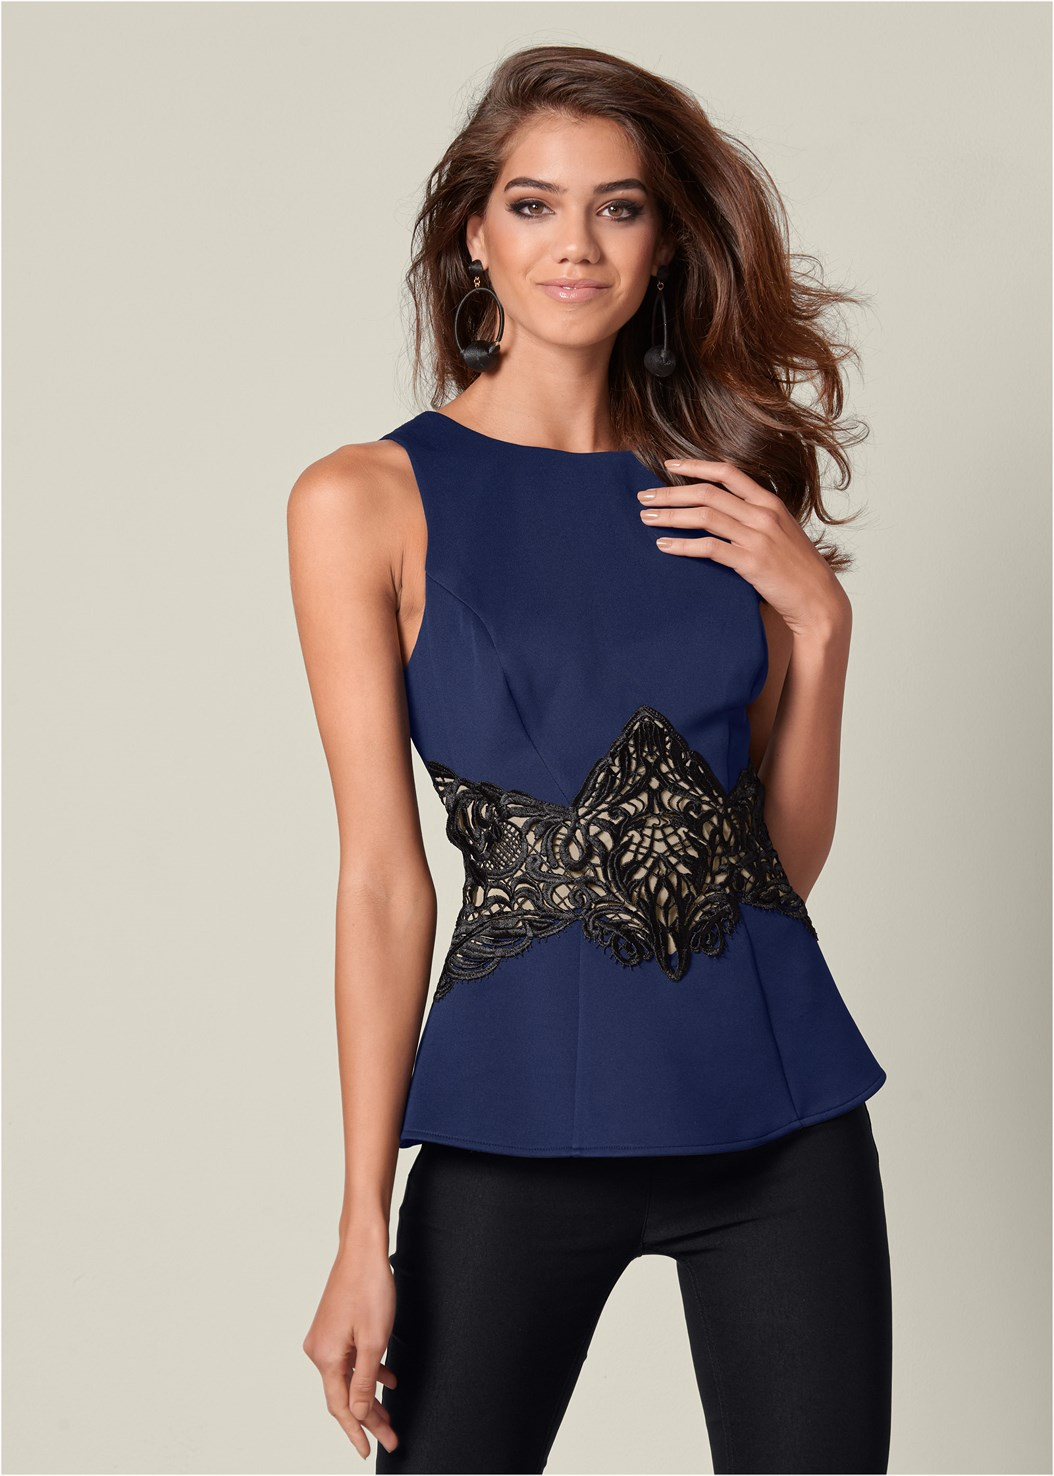 Lace Waistband Trim Top,Mid Rise Full Length Slimming Stretch Jeggings,High Heel Strappy Sandals,Bauble Hoop Earrings